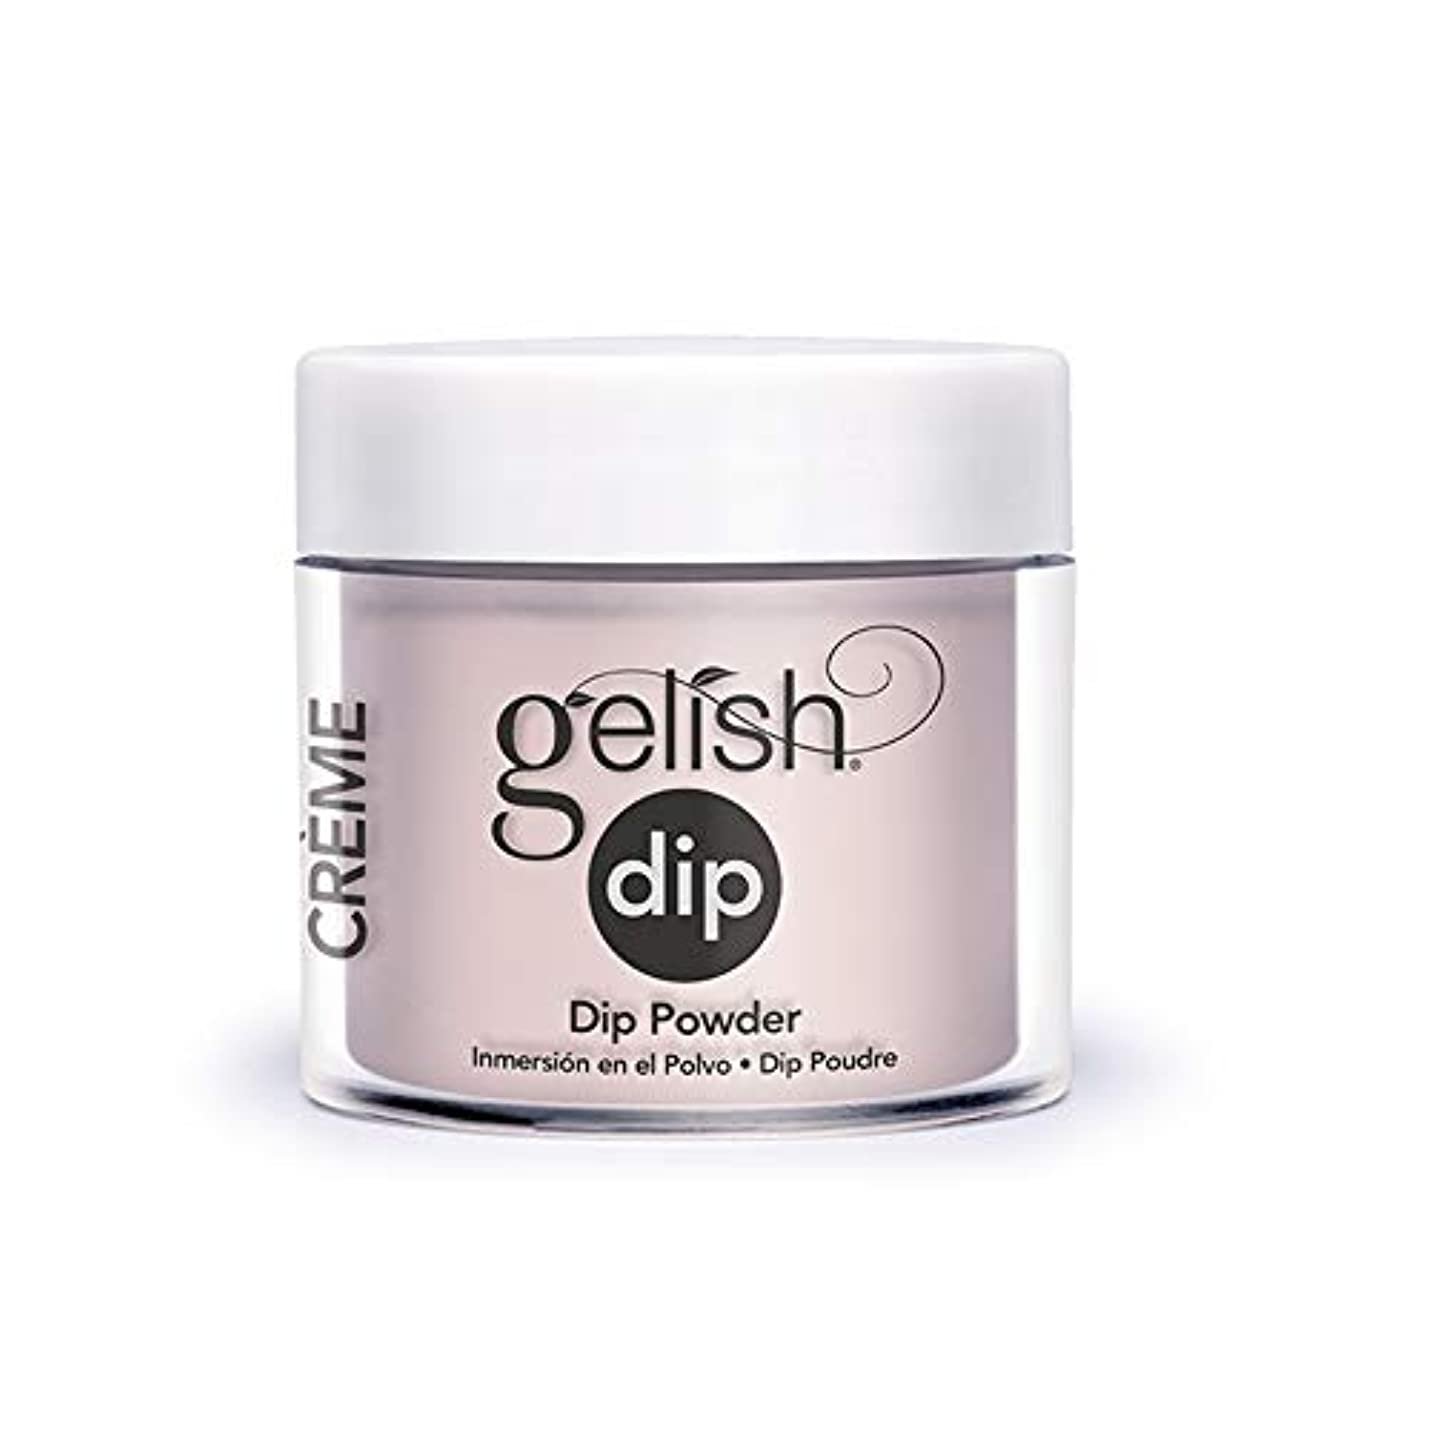 肝食べるバランスのとれたHarmony Gelish - Acrylic Dip Powder - Polished Up - 23g / 0.8oz